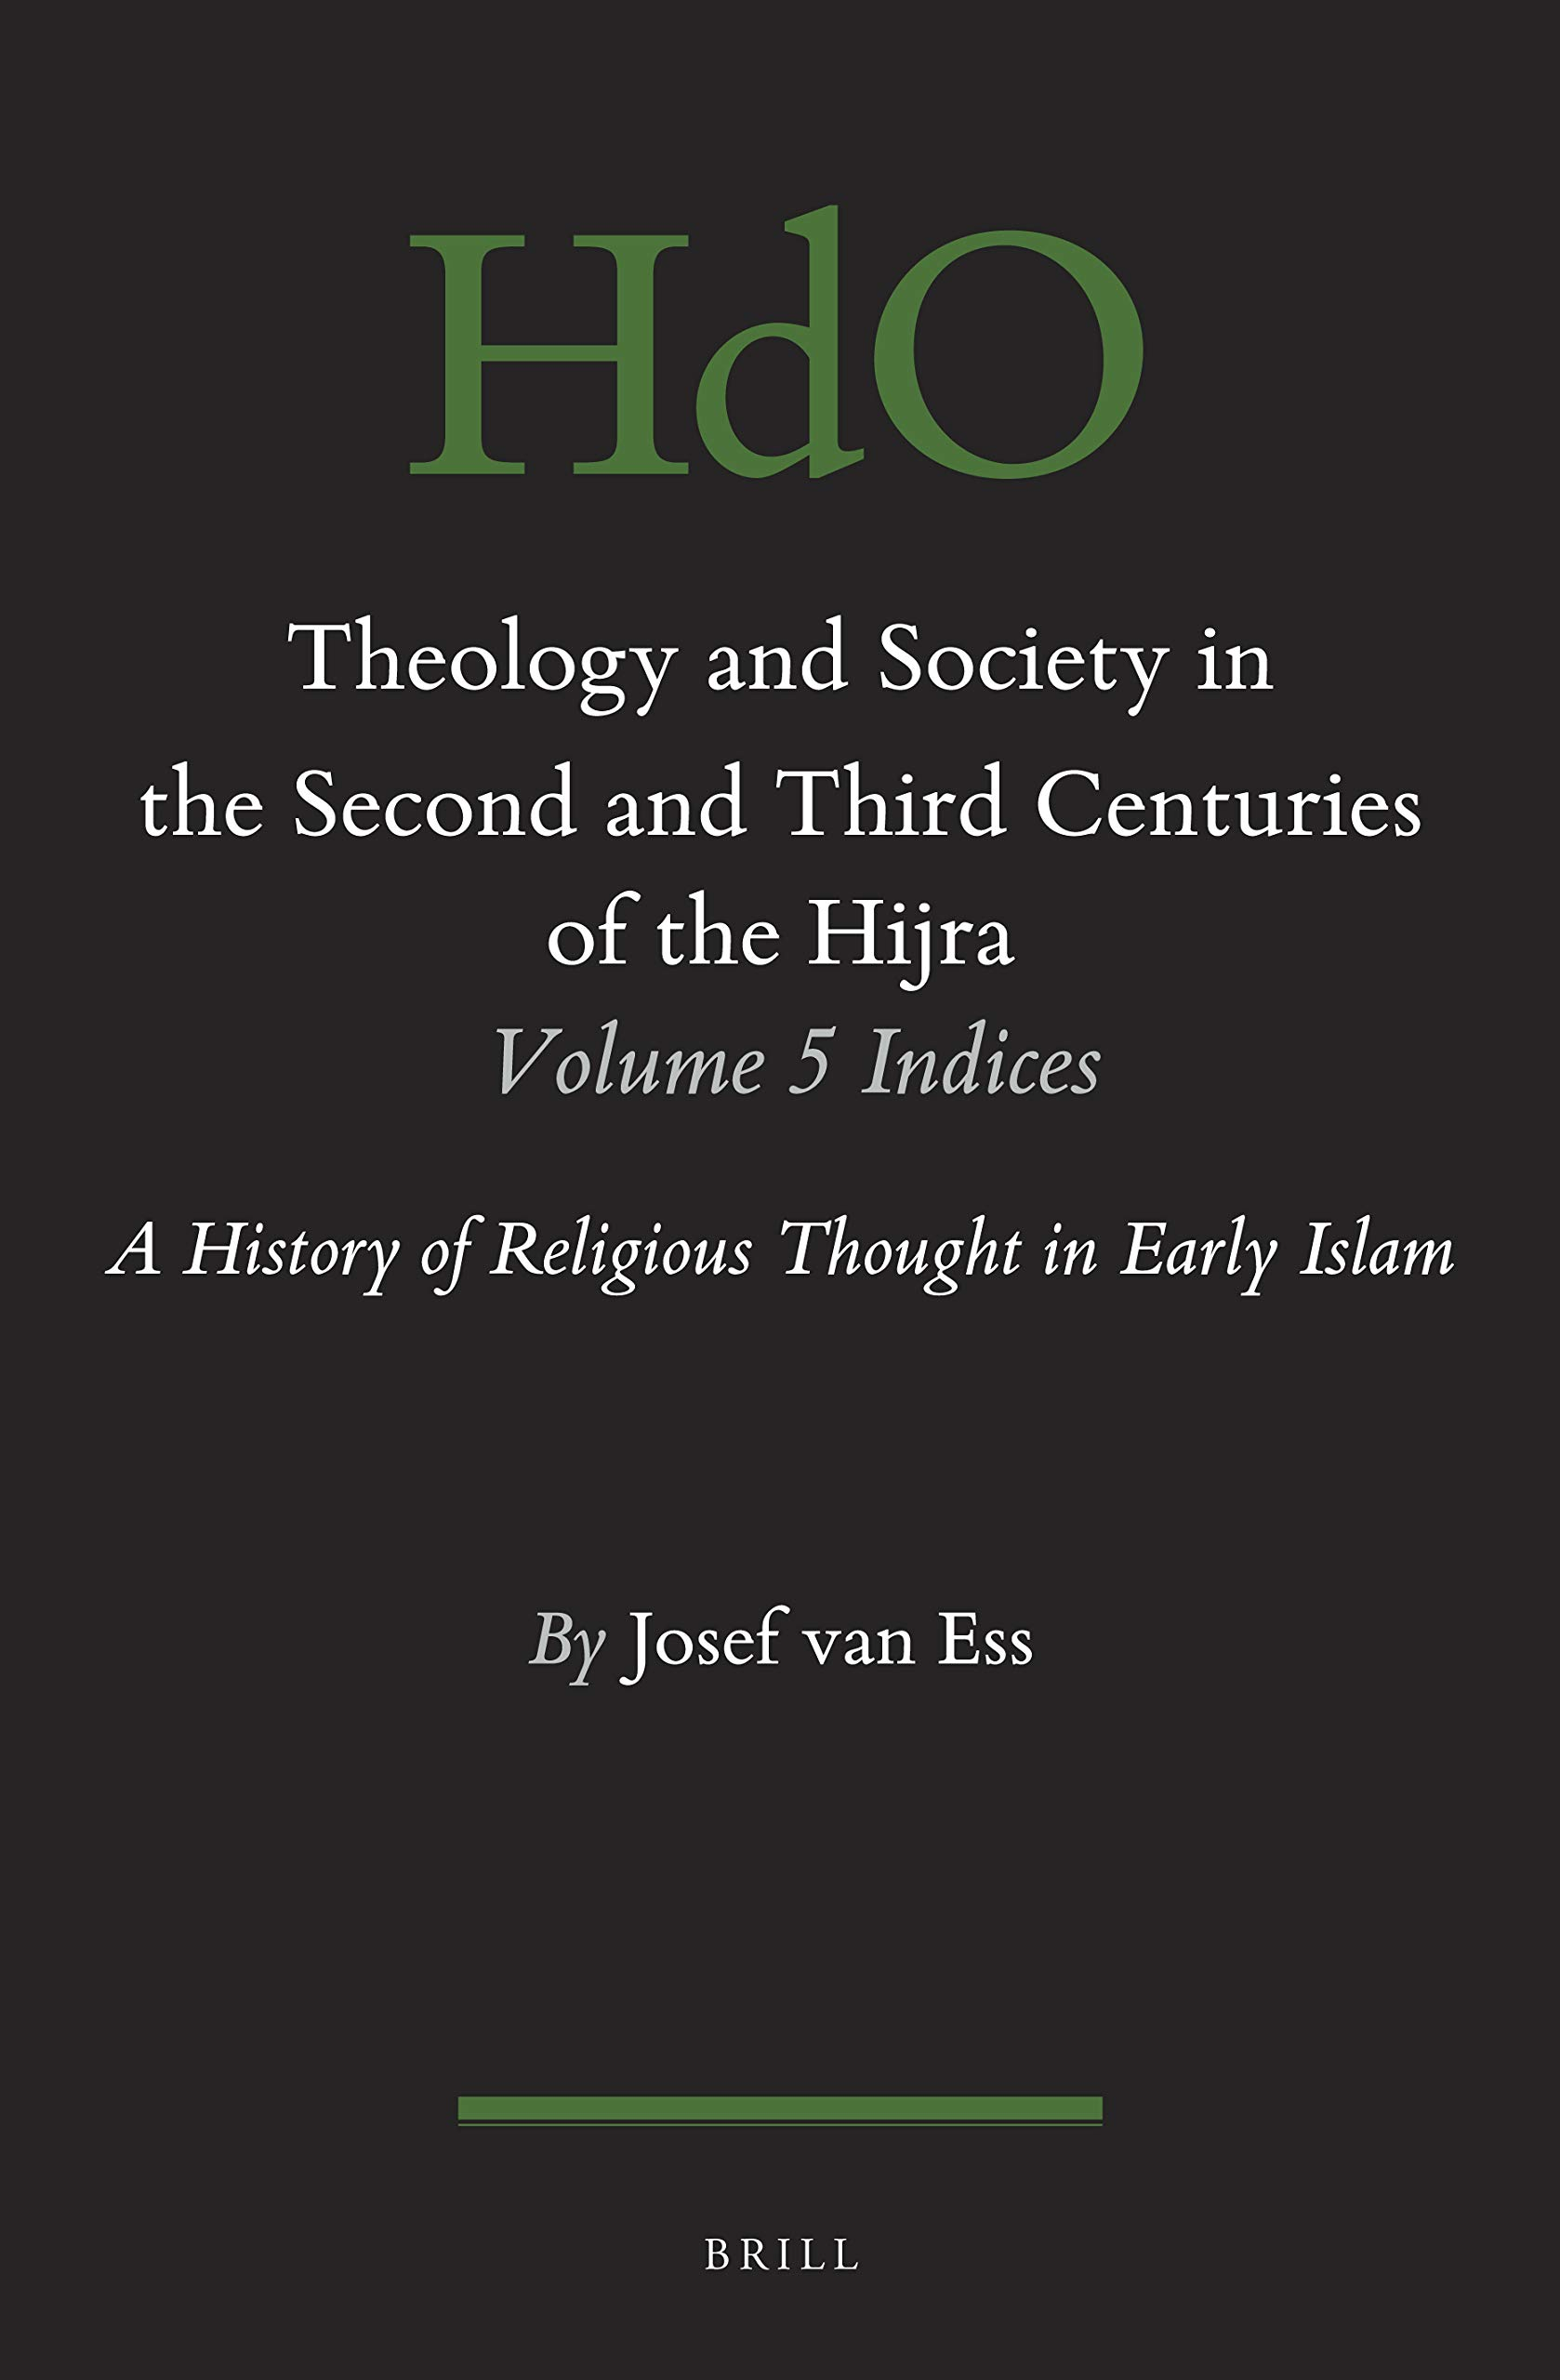 Theology and Society in the Second and Third Century of the Hijra. Indices: A History of Religious Thought in Early Islam (English and Arabic Edition) by Brill Academic Pub